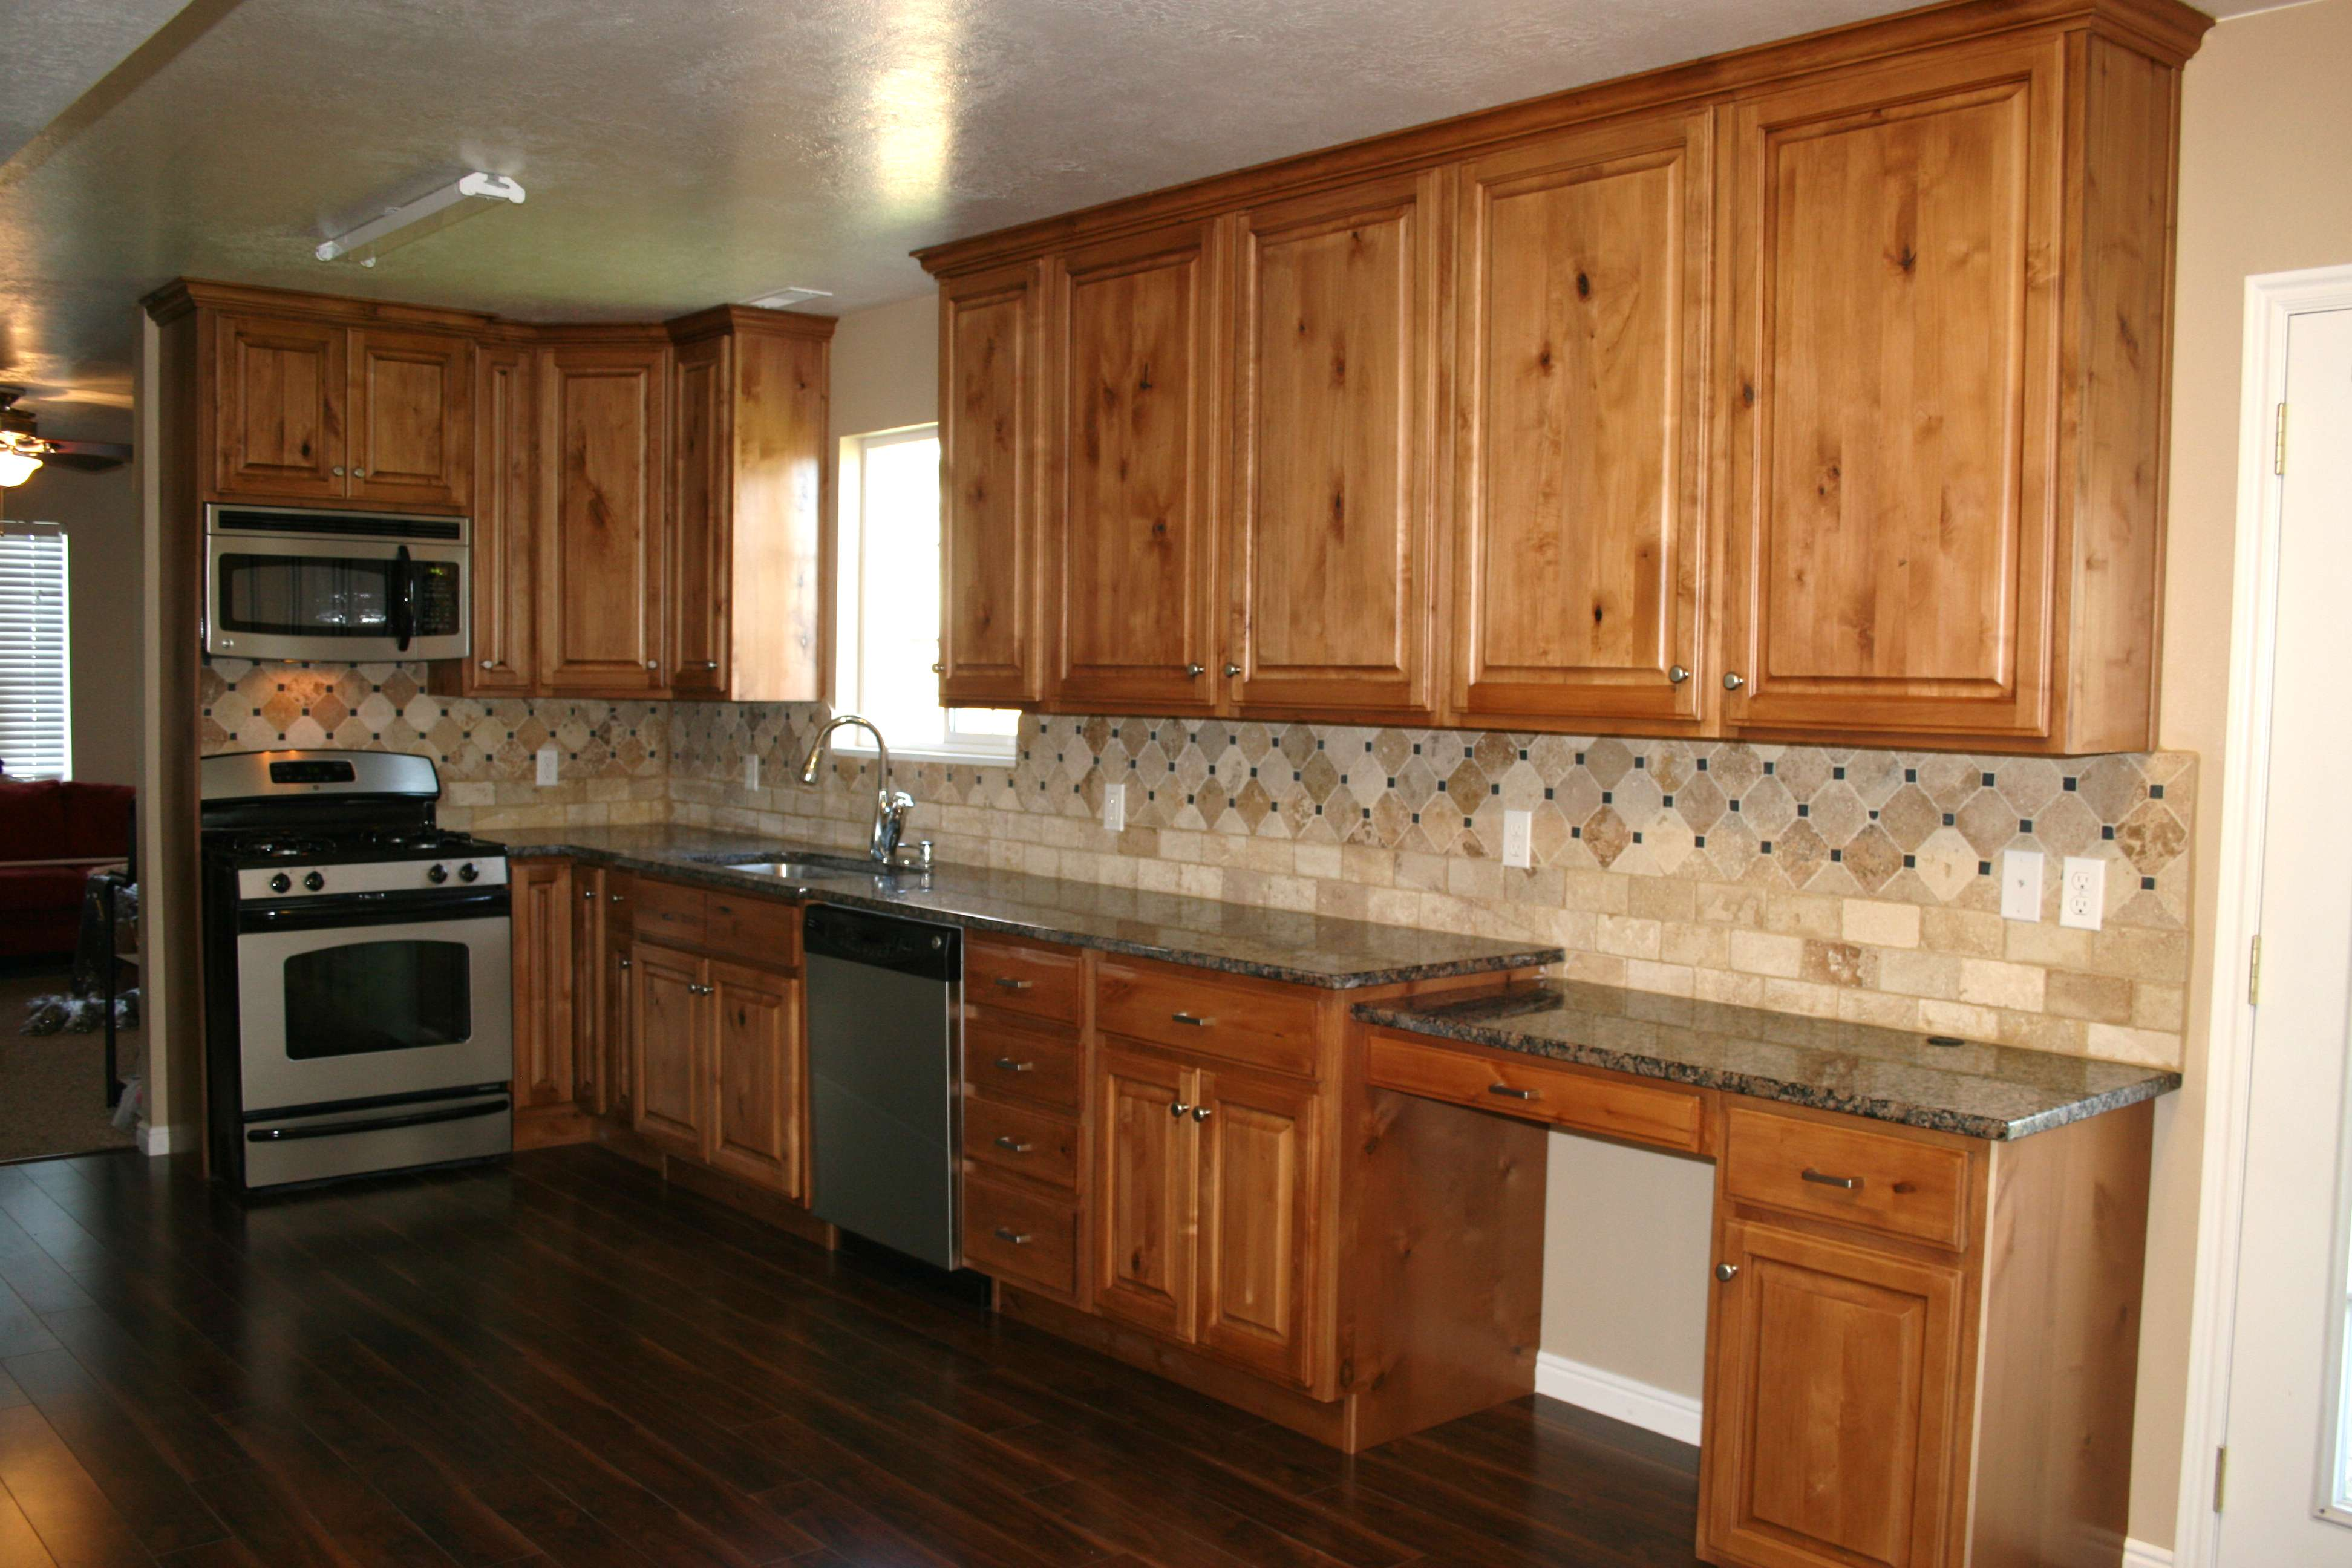 Kitchens - Countertops and backsplashes for kitchens ...